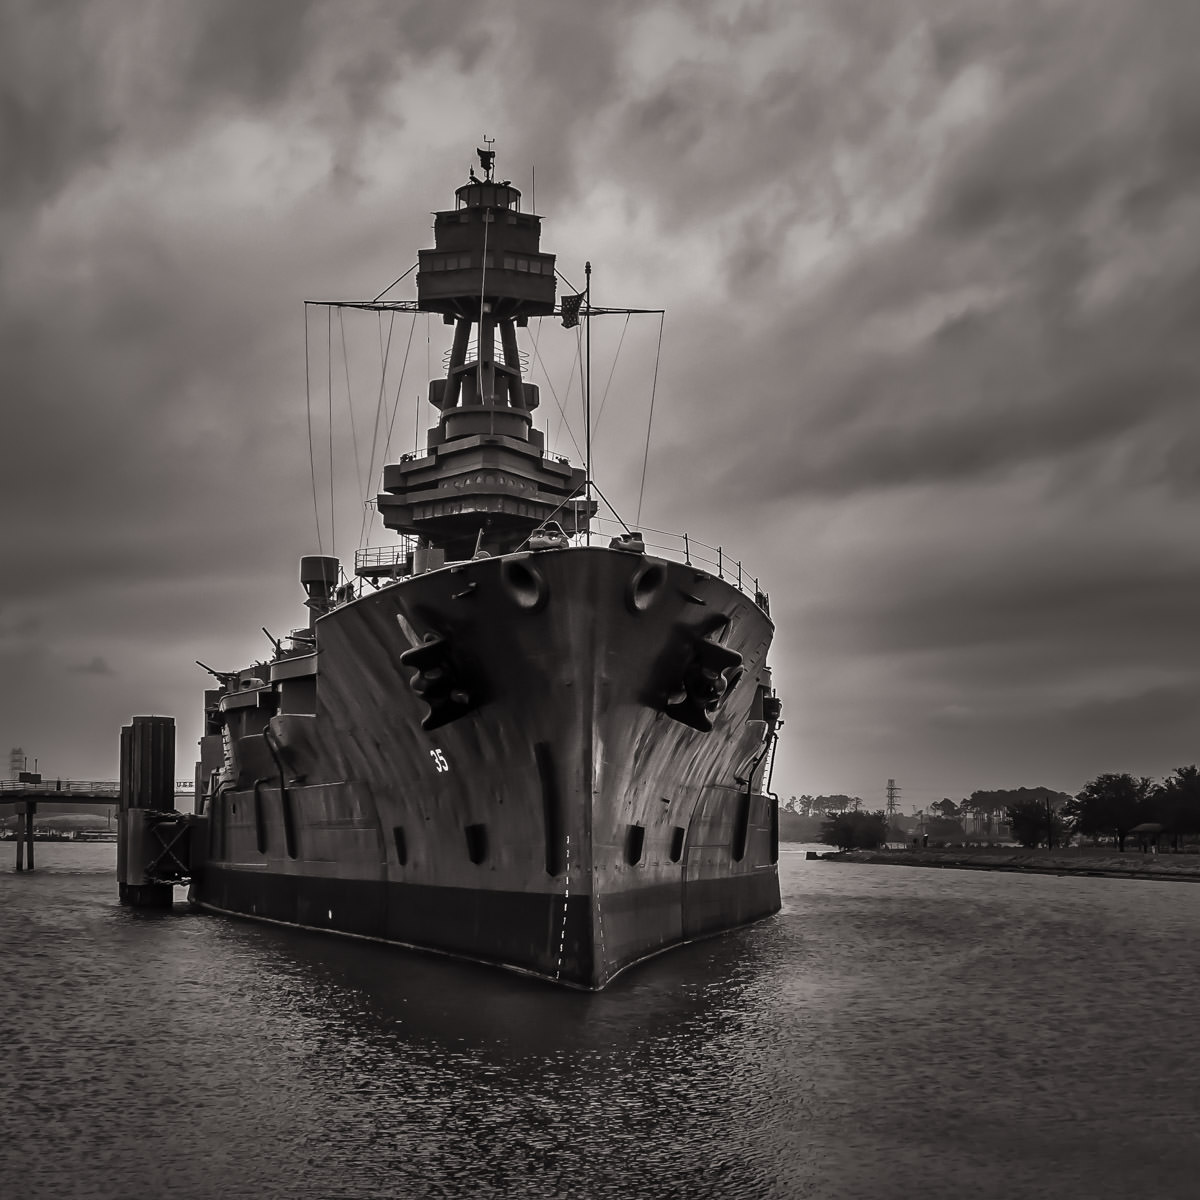 The USS Texas, commissioned in 1914, saw action in both World Wars, including D-Day and at Iwo Jima and is the only extant World War I-era dreadnoughts.  Since 1948, she has been permanently moored adjacent to the Houston Ship Channel near the San Jacinto Monument to act as a museum ship.